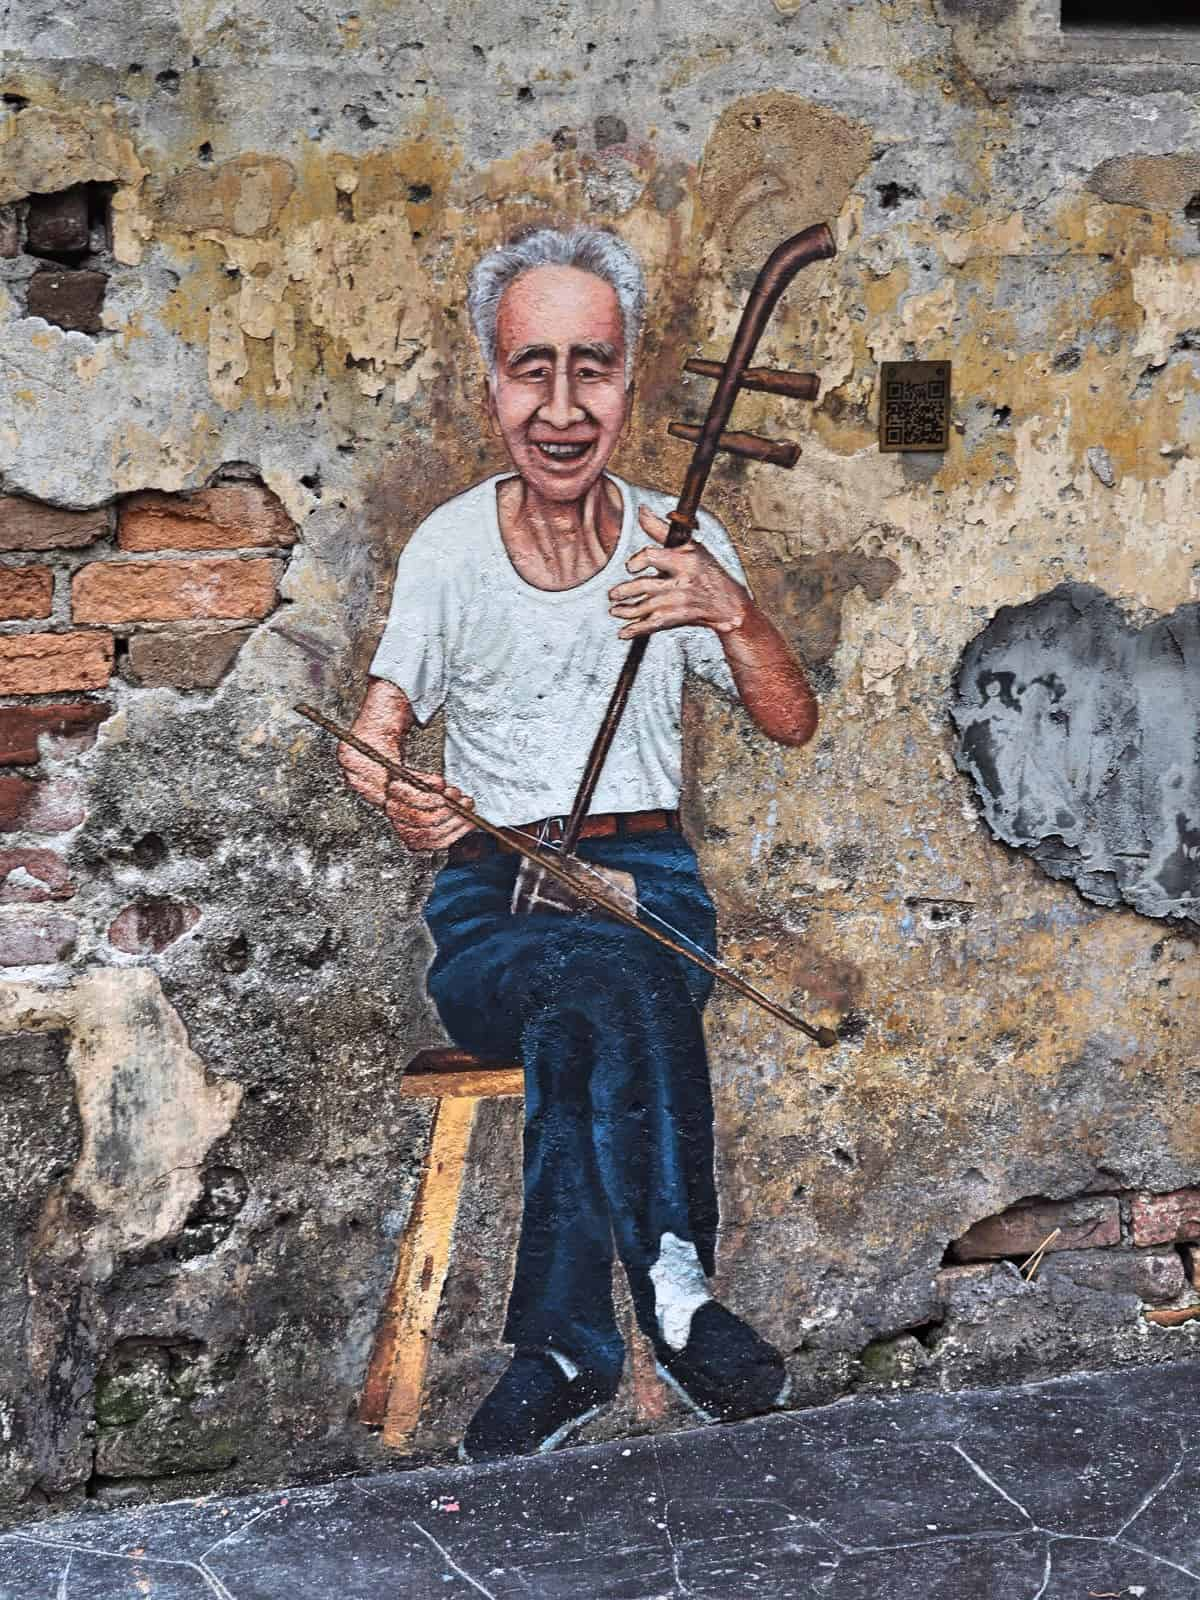 A mural of an uncle playing the erhu : Kwai Chai Hong heritage lane in Kuala Lumpur's Chinatown